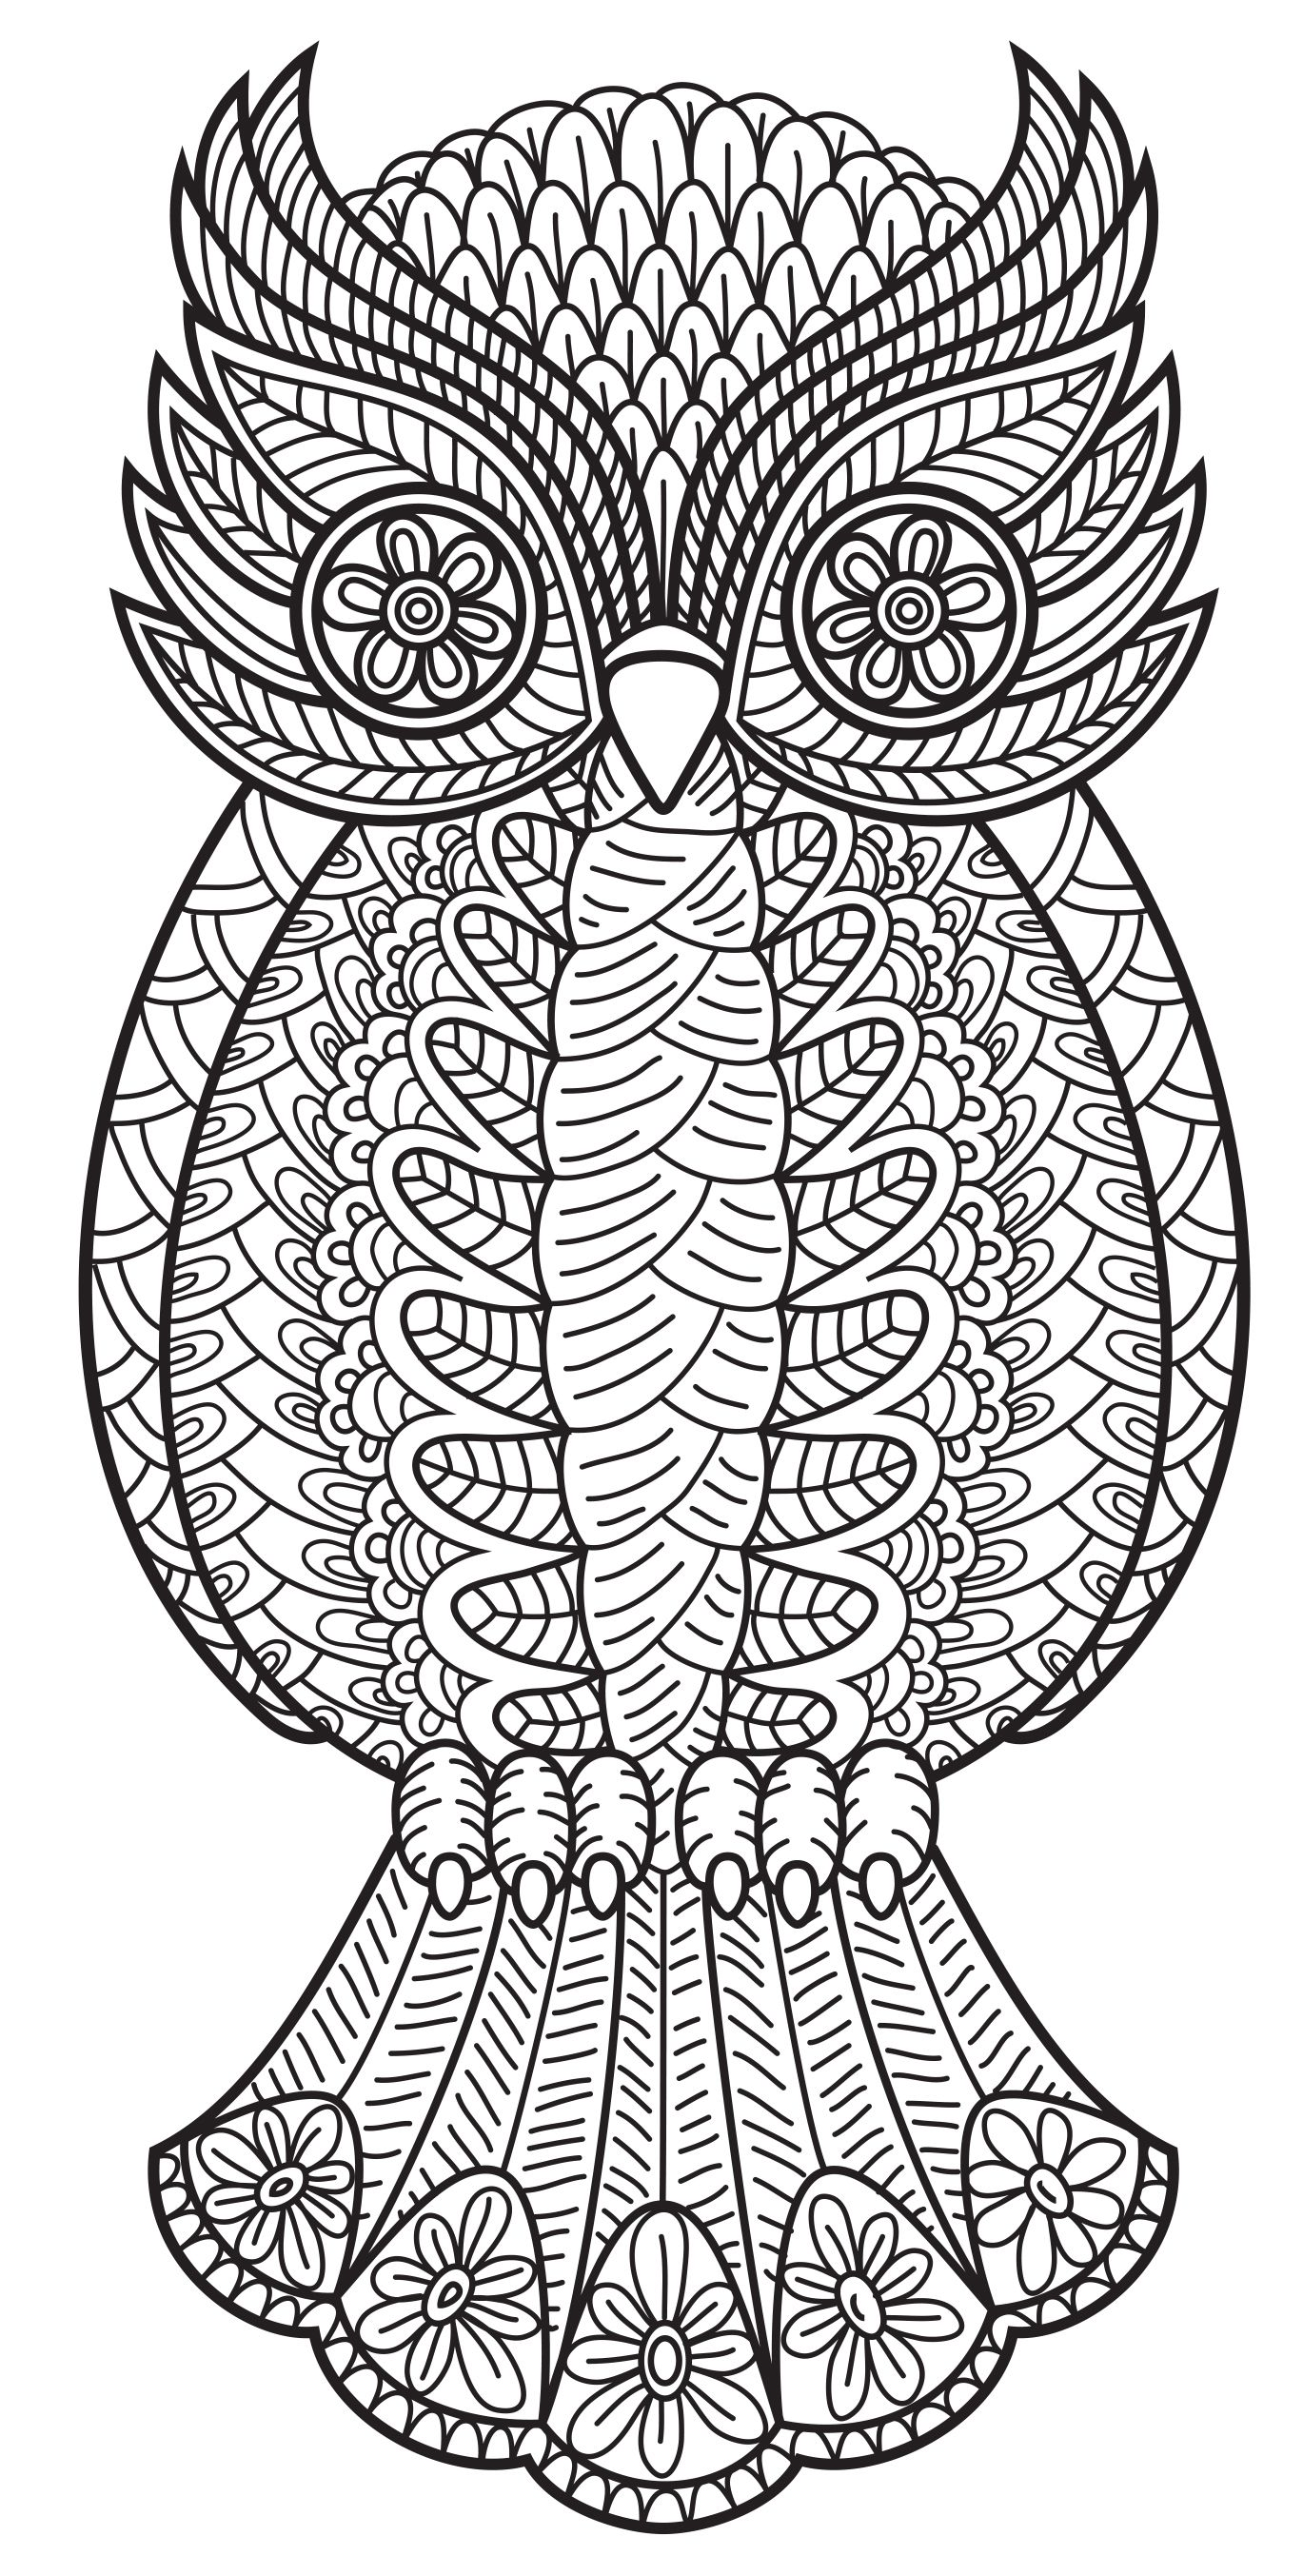 An Owl From Patterns Coloring Book Vol 3 | Coloring Pages